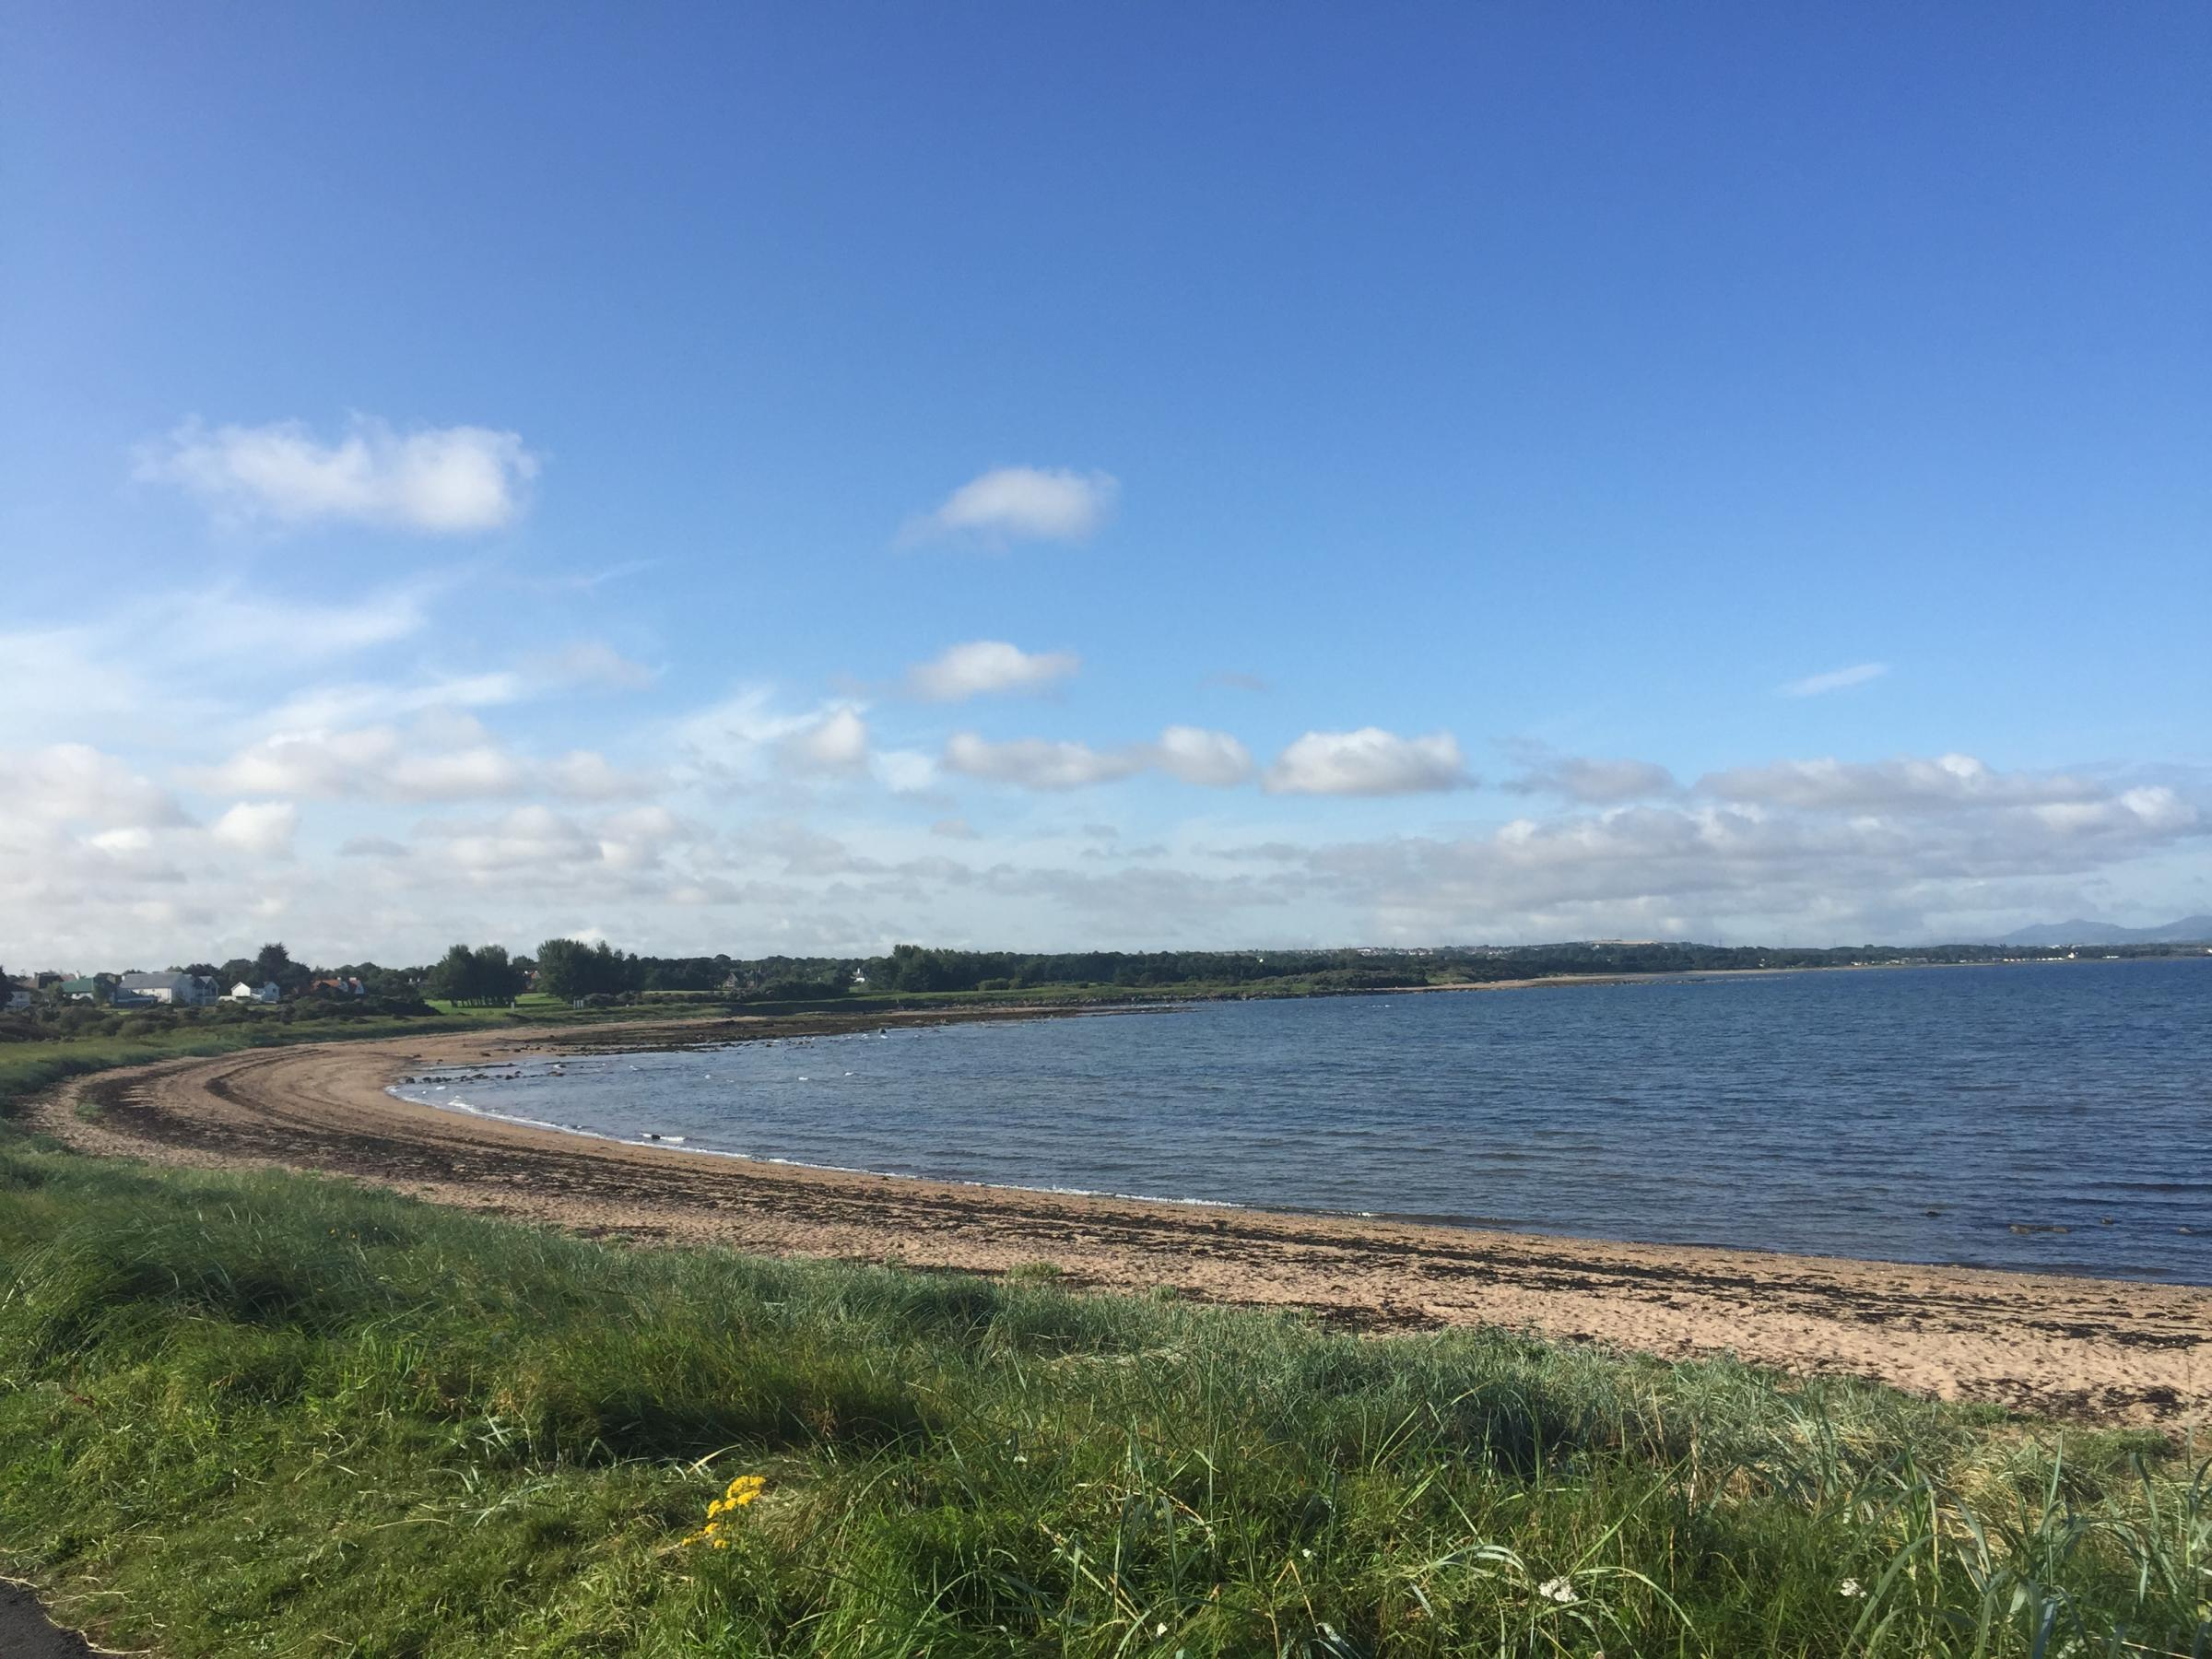 The horse rider fell while on the beach at Longniddry Bents